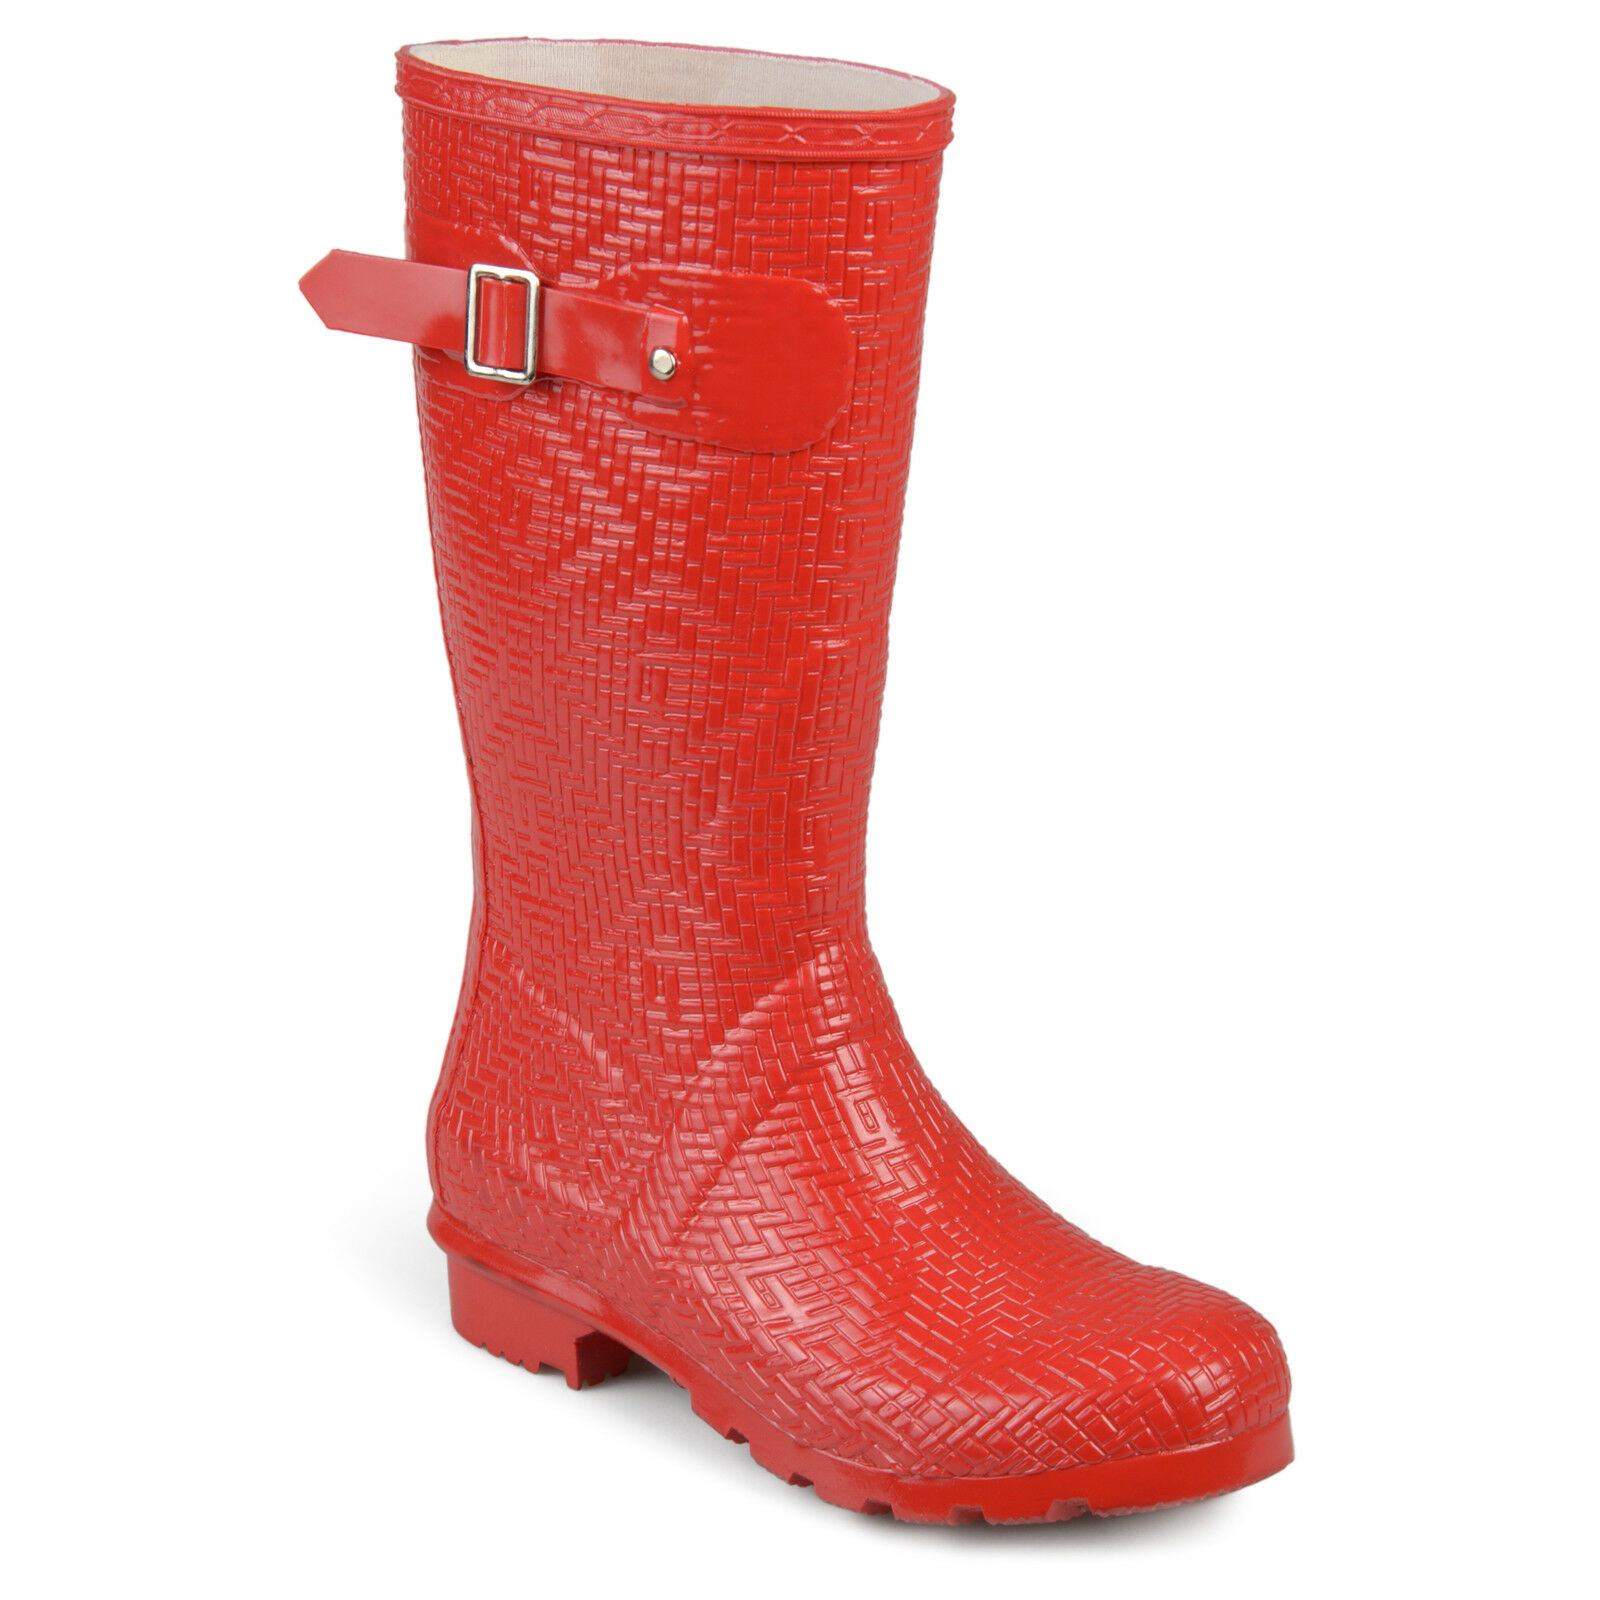 Womens drench Mid-Calf Textured Basketweave Rubber Rainboots